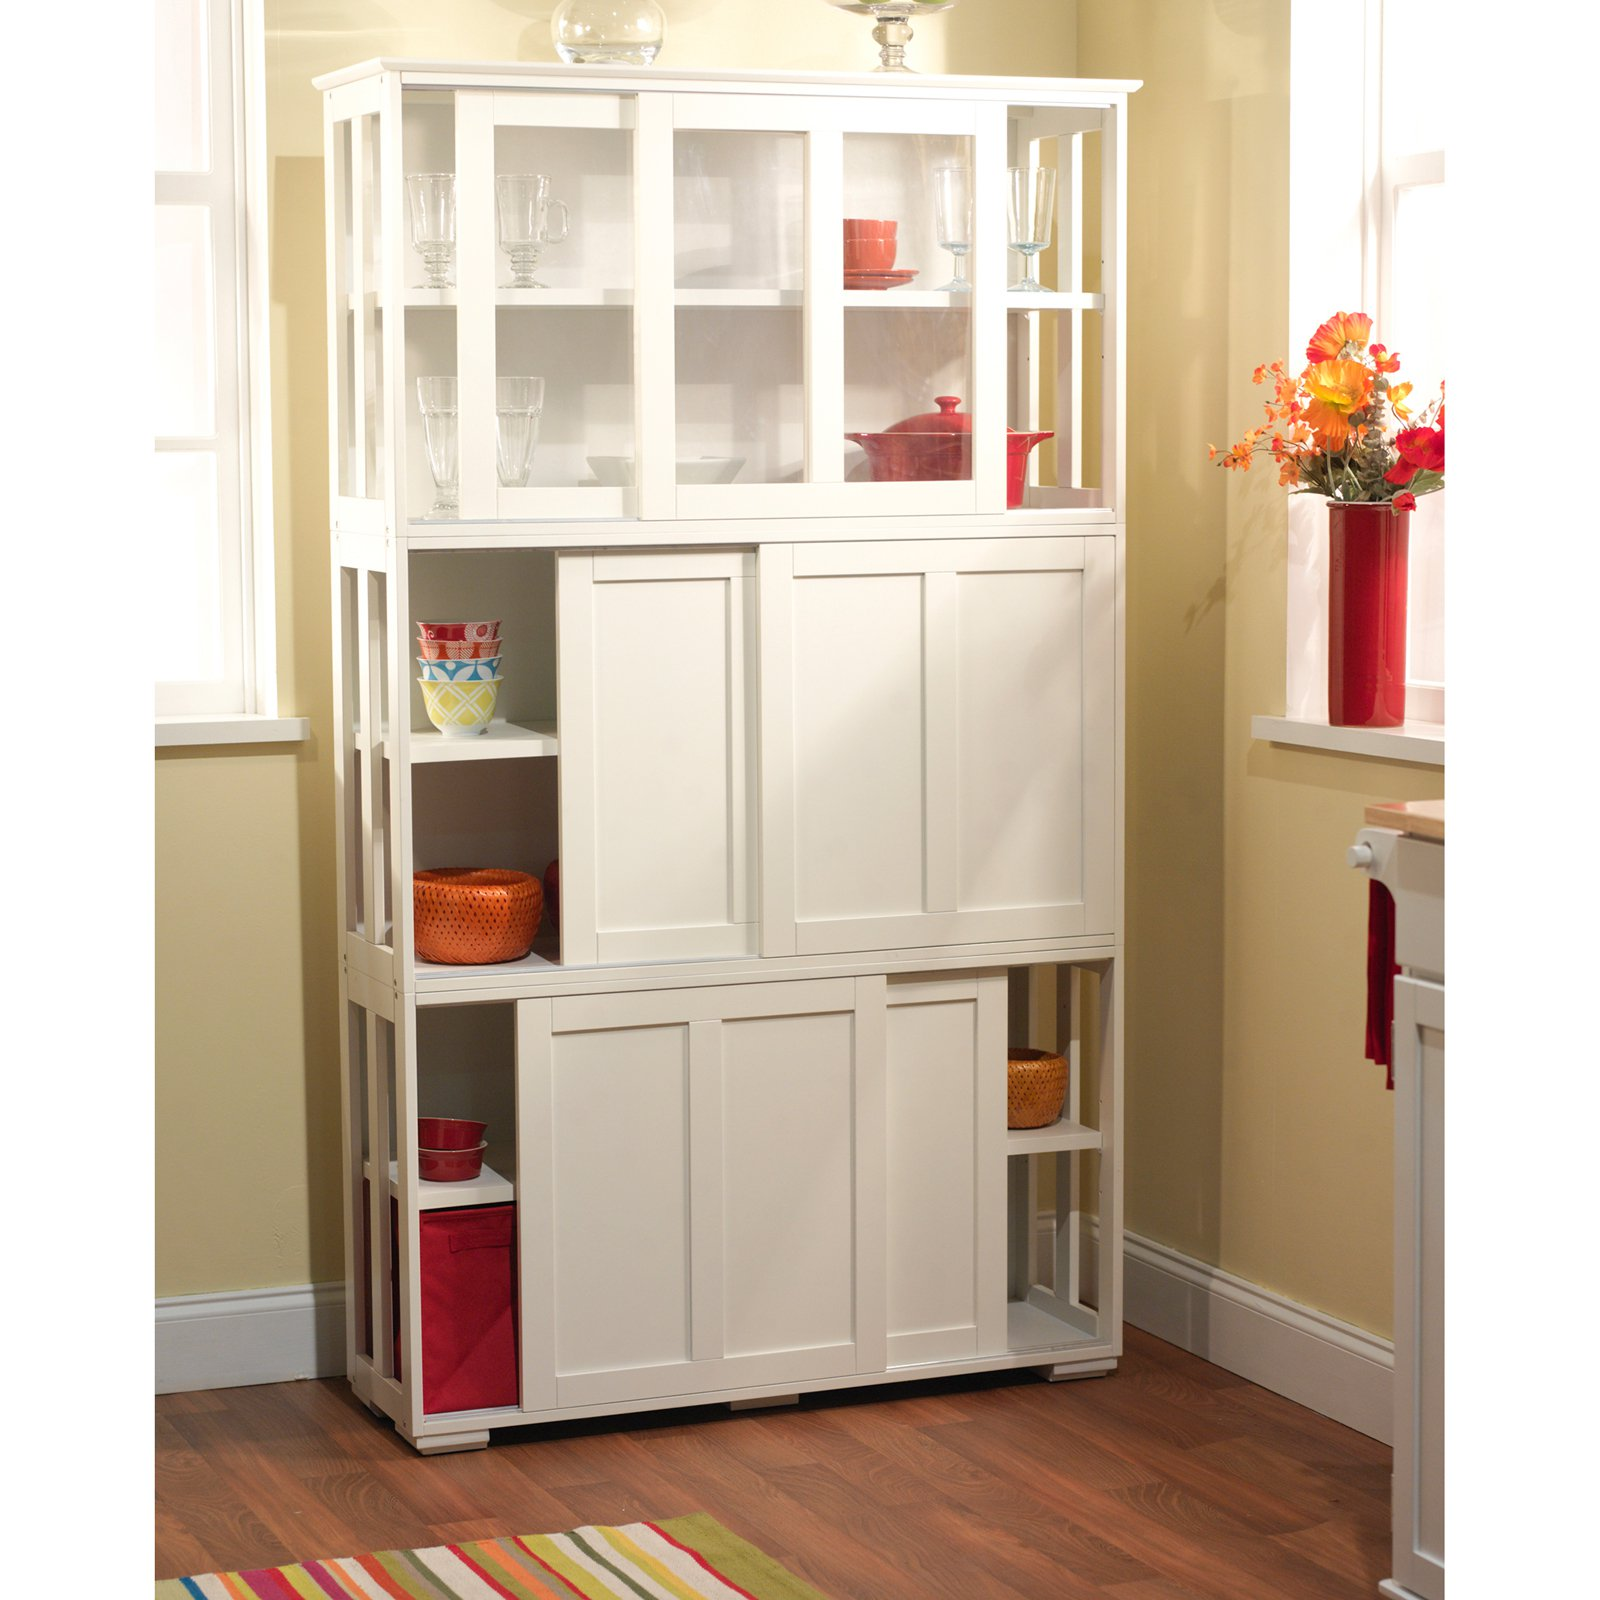 Sliding Wood Doors Stackable Storage Cabinet Multiple Colors - Walmart.com  sc 1 st  Walmart & Sliding Wood Doors Stackable Storage Cabinet Multiple Colors ...